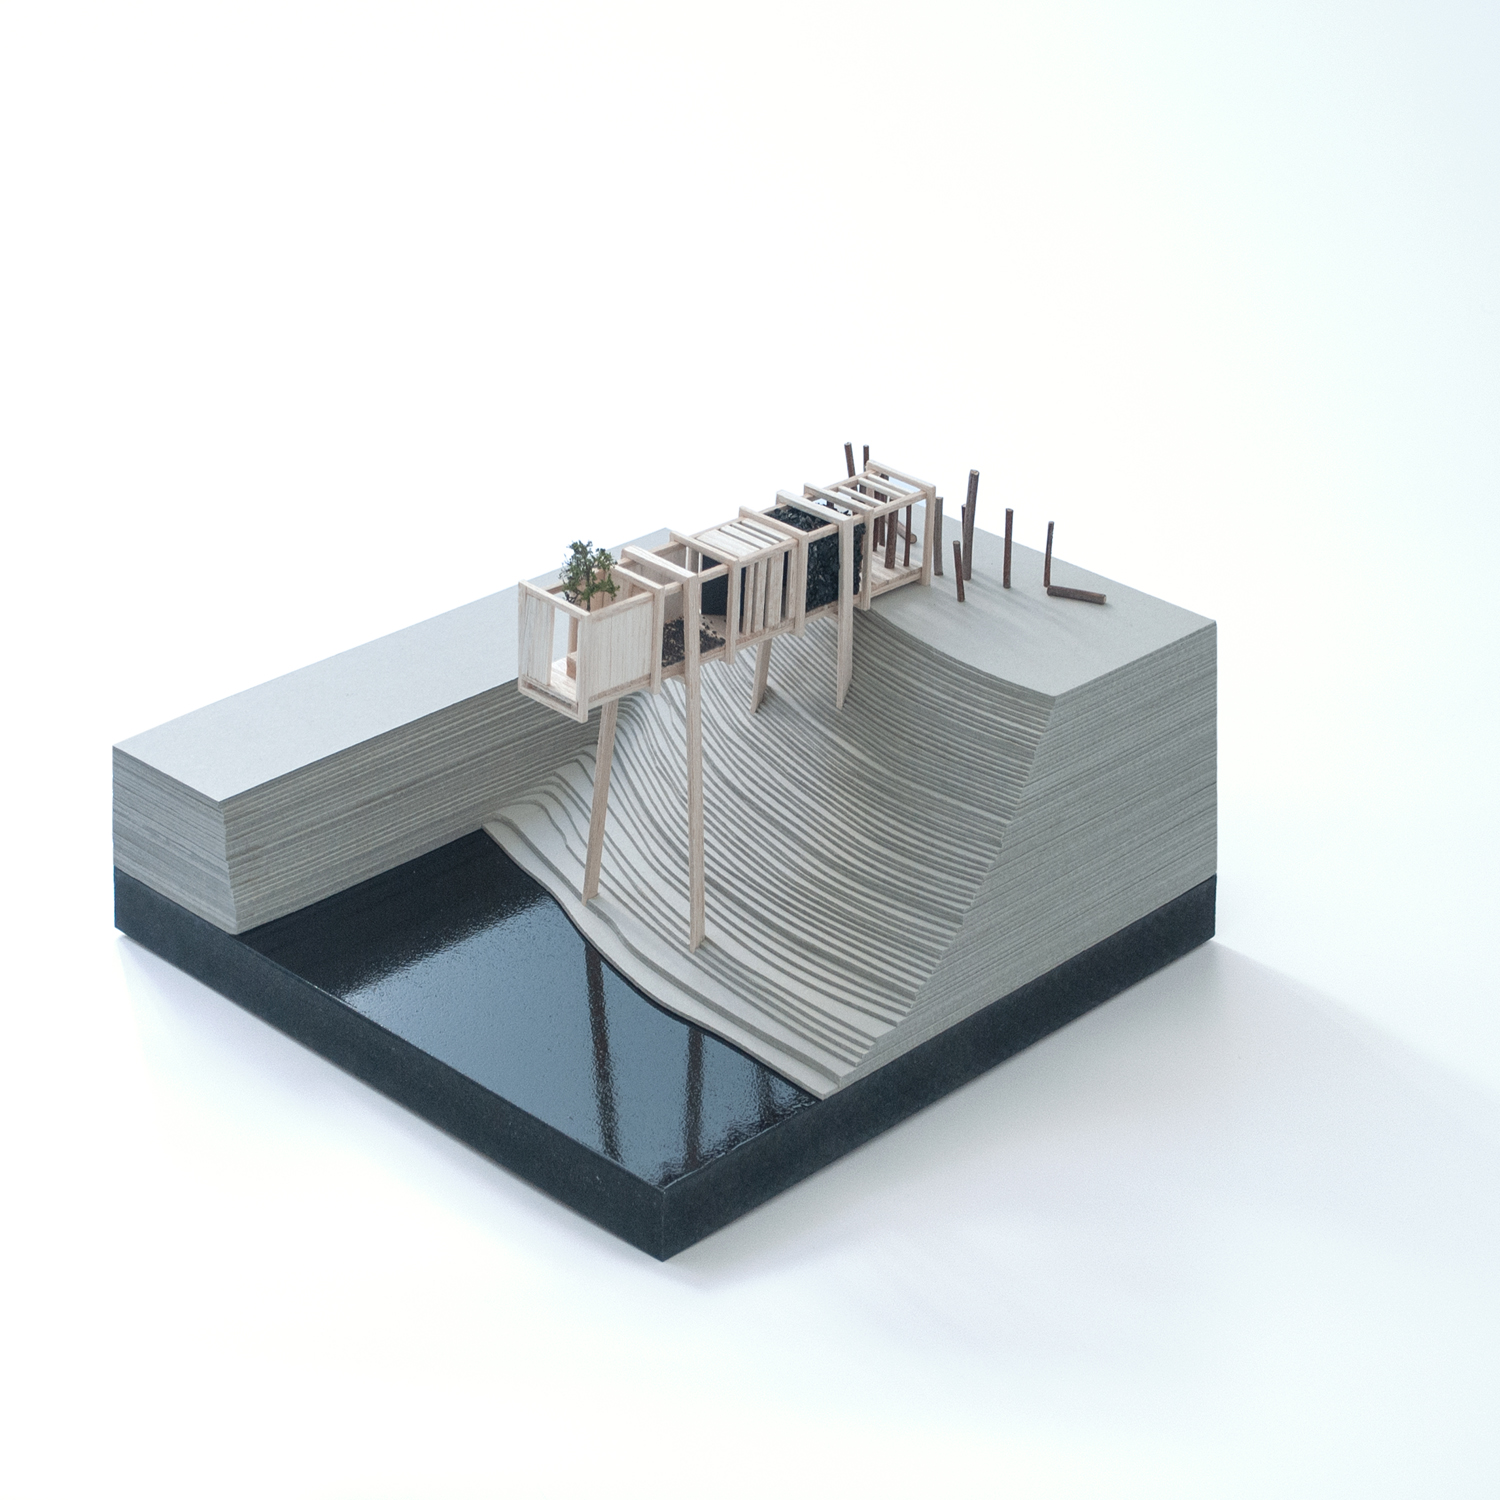 microcosme_con_form_architects_model 01.jpg